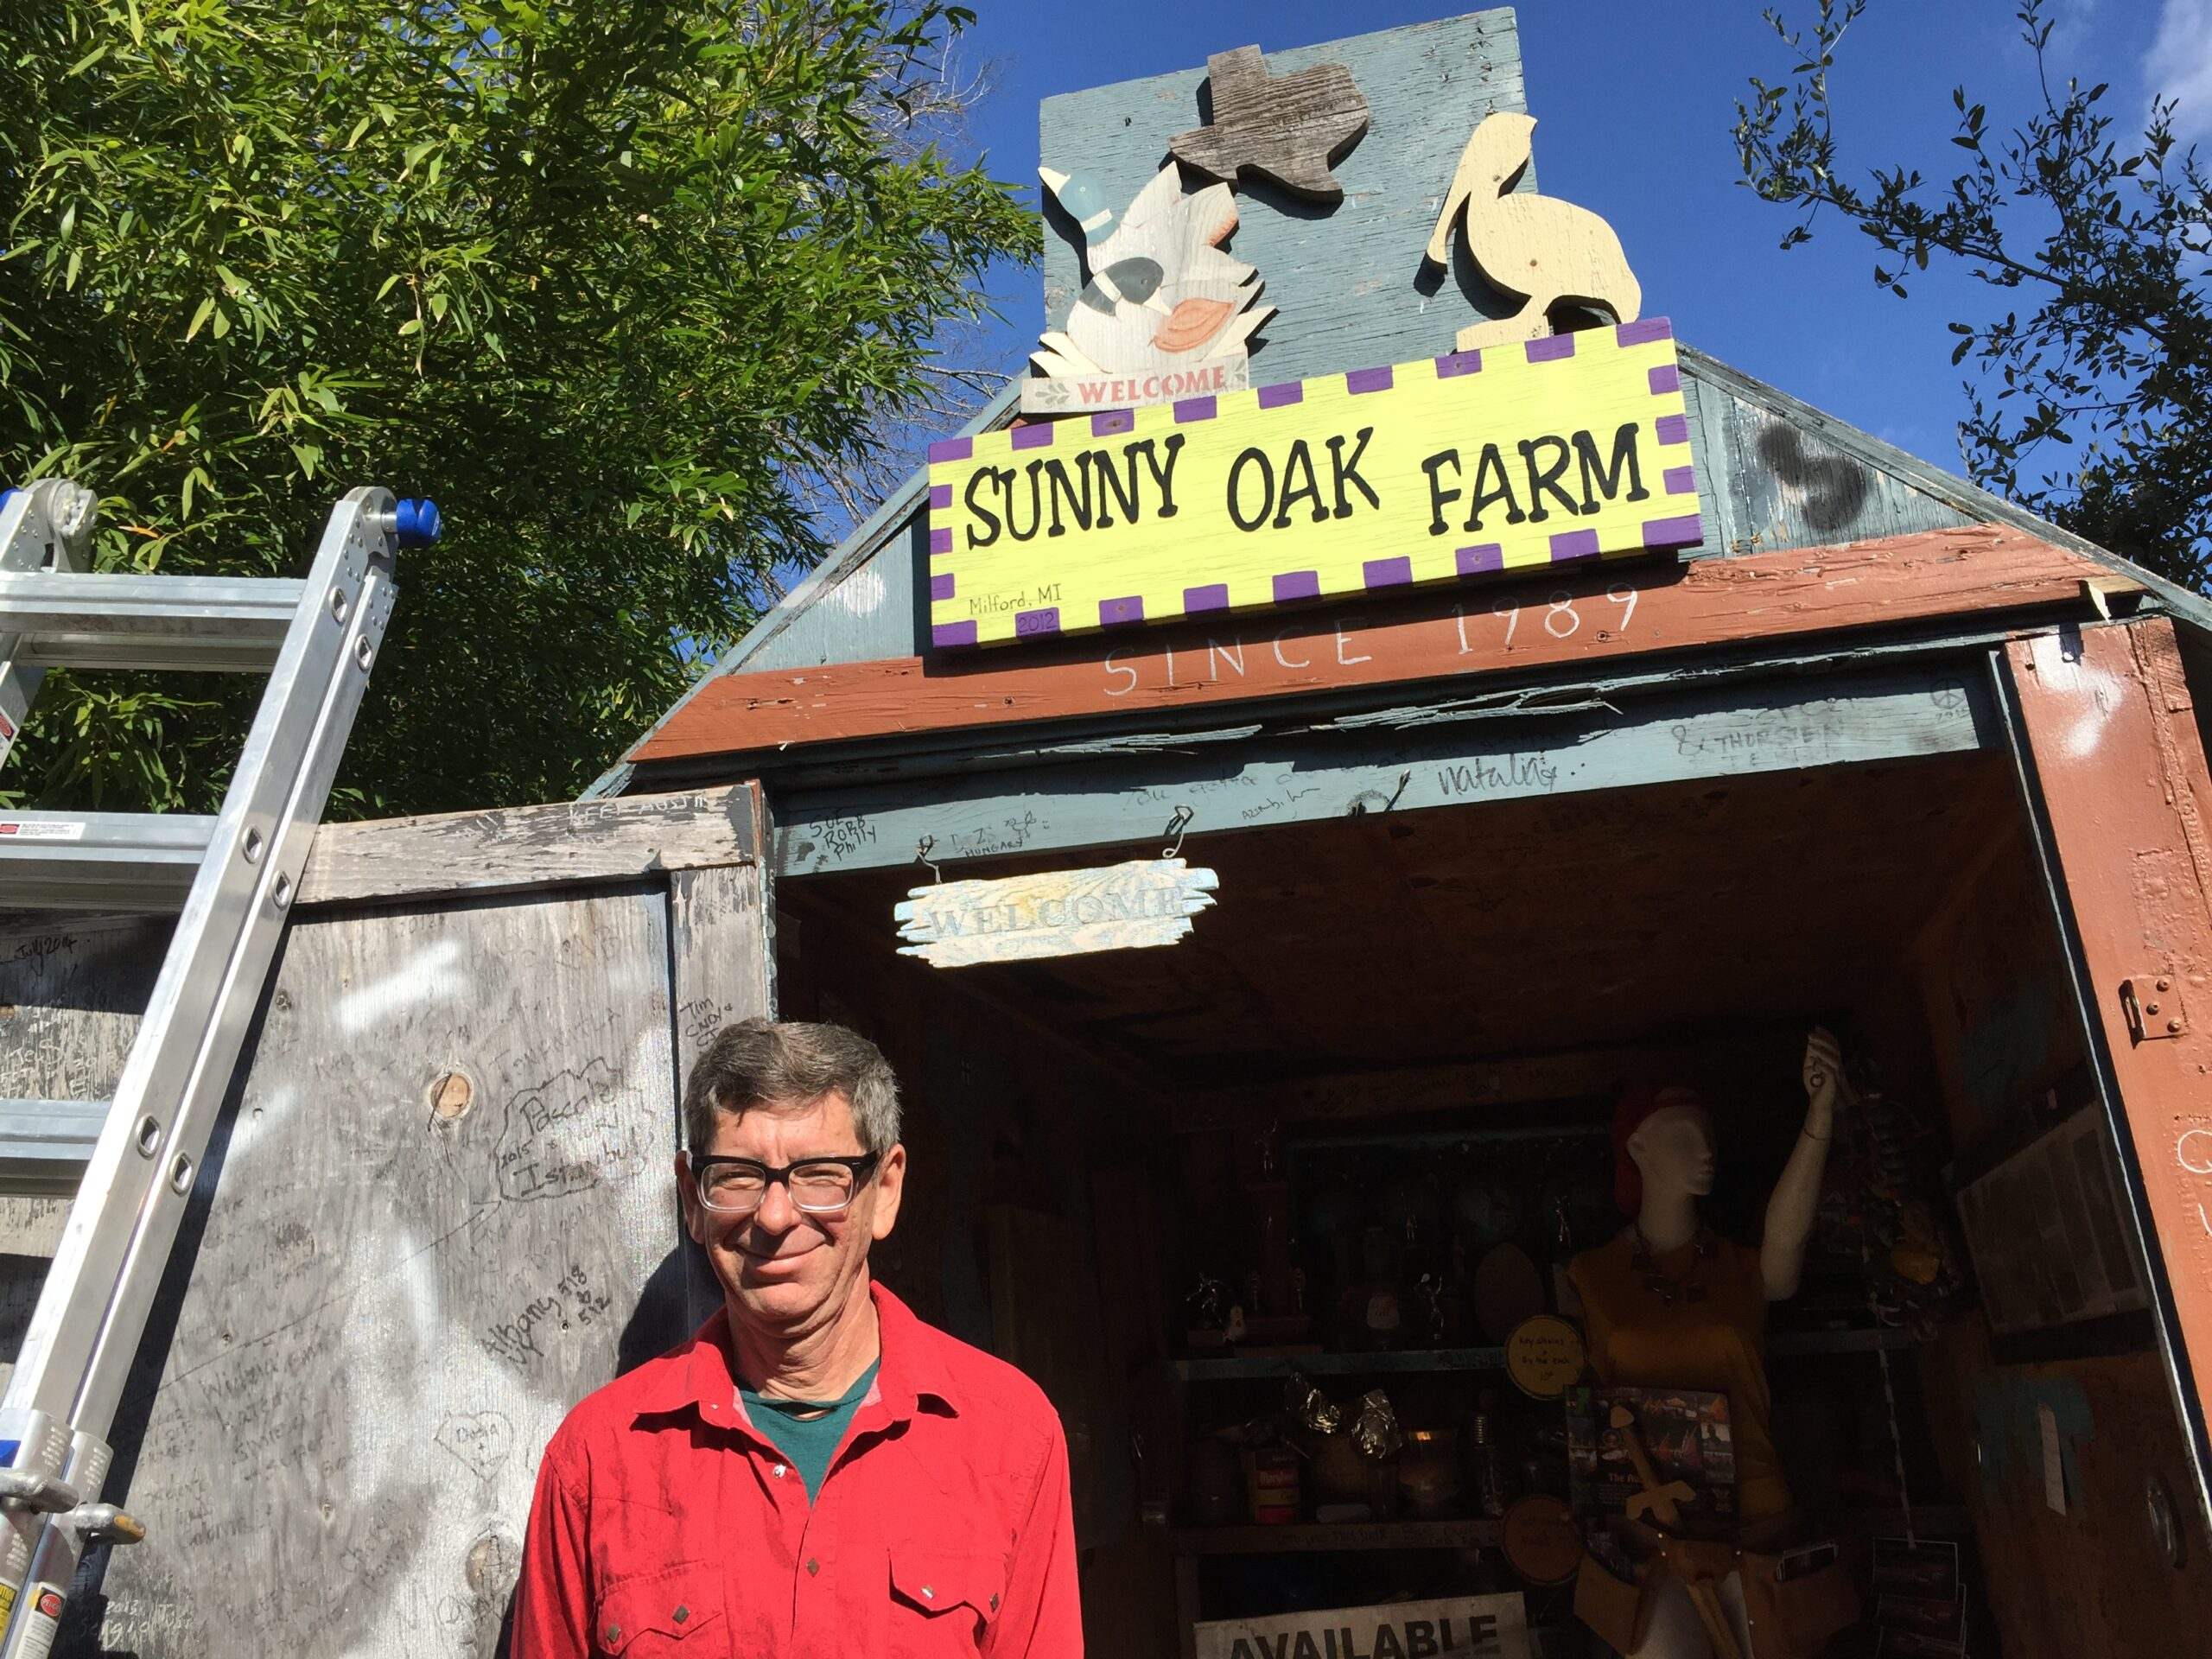 Cathedral of Junk - Vince — creator, owner and curator of the Cathedral of Junk